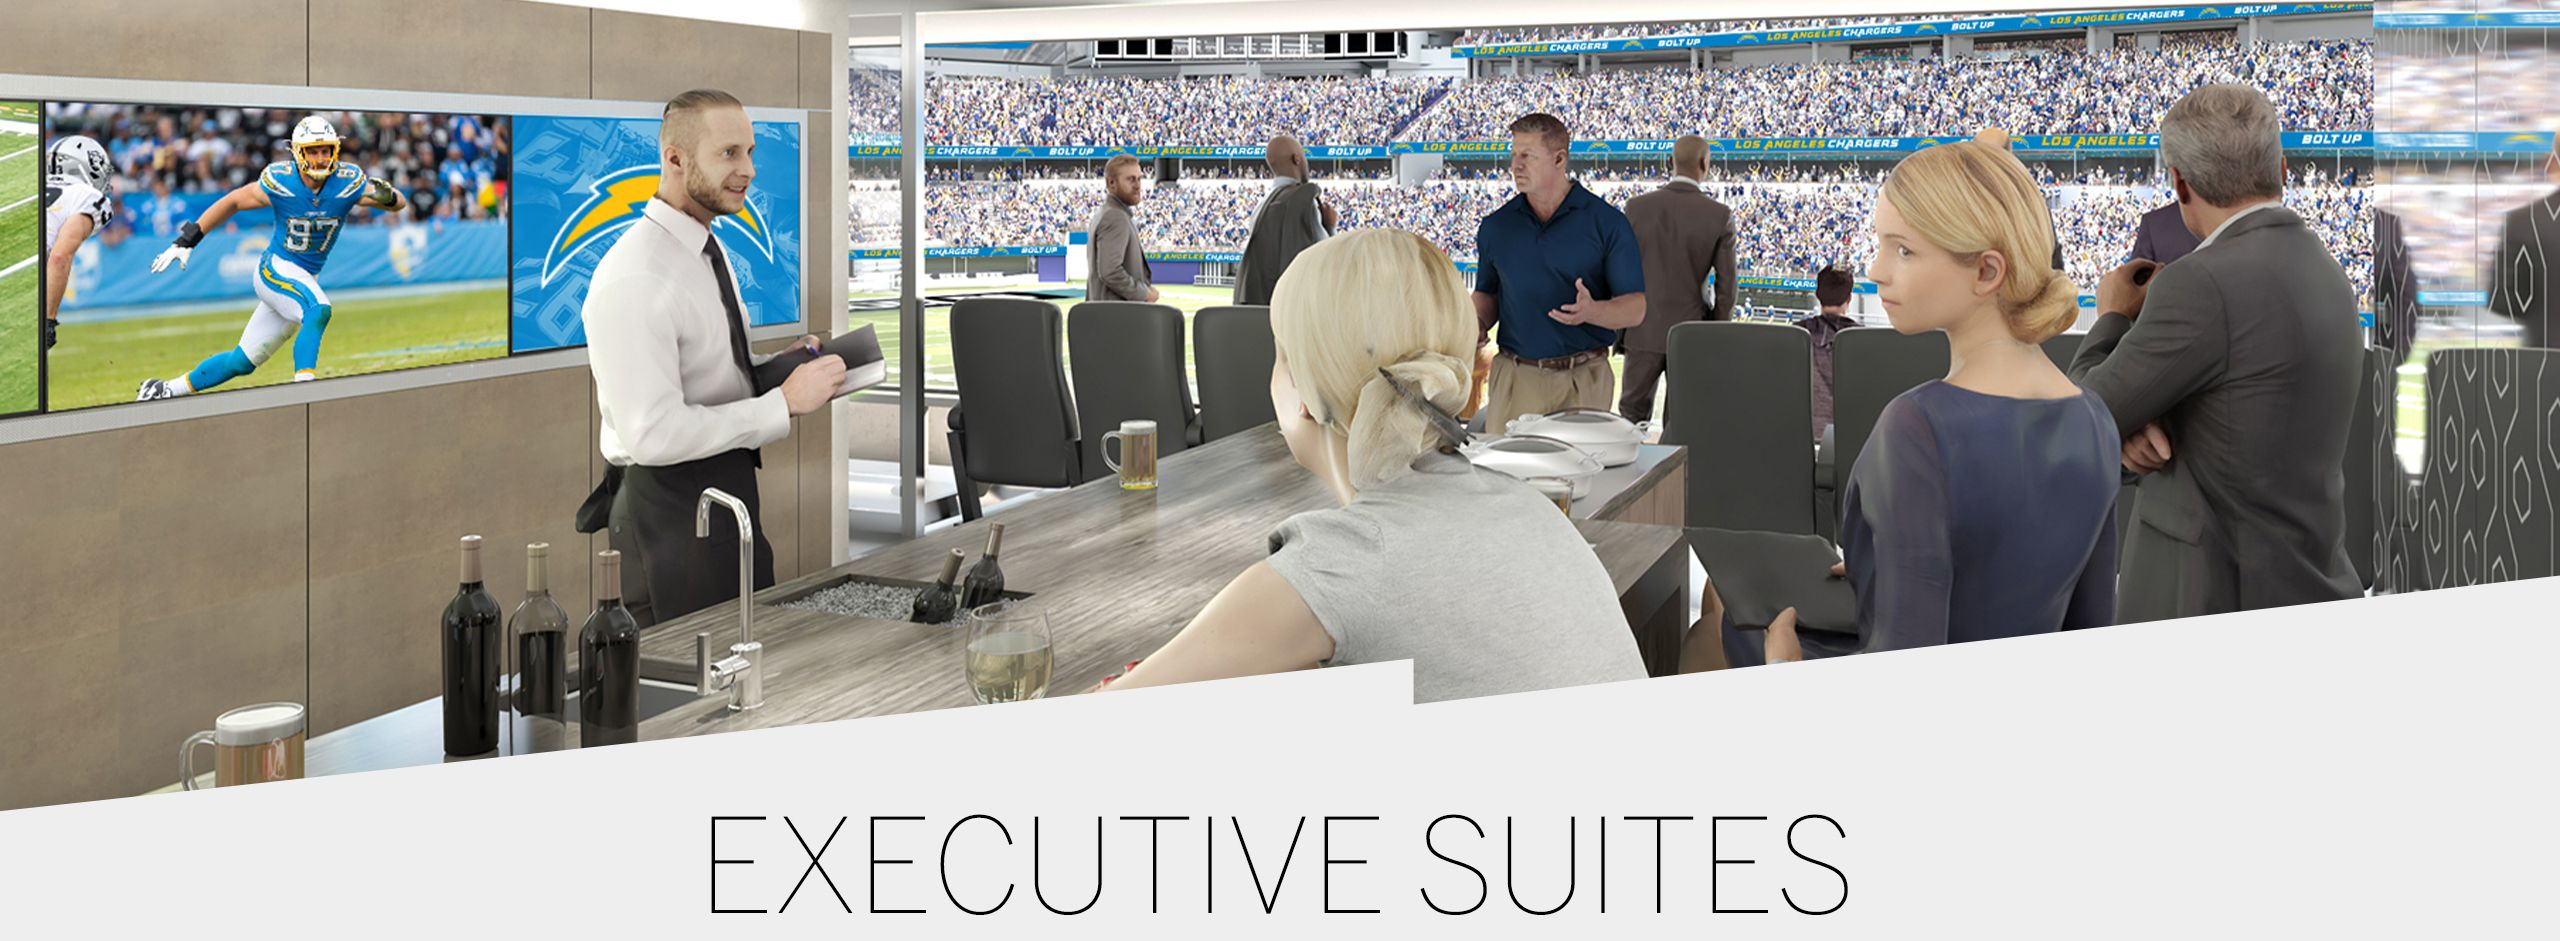 200604_Site_Suites_Header_Executive_V2